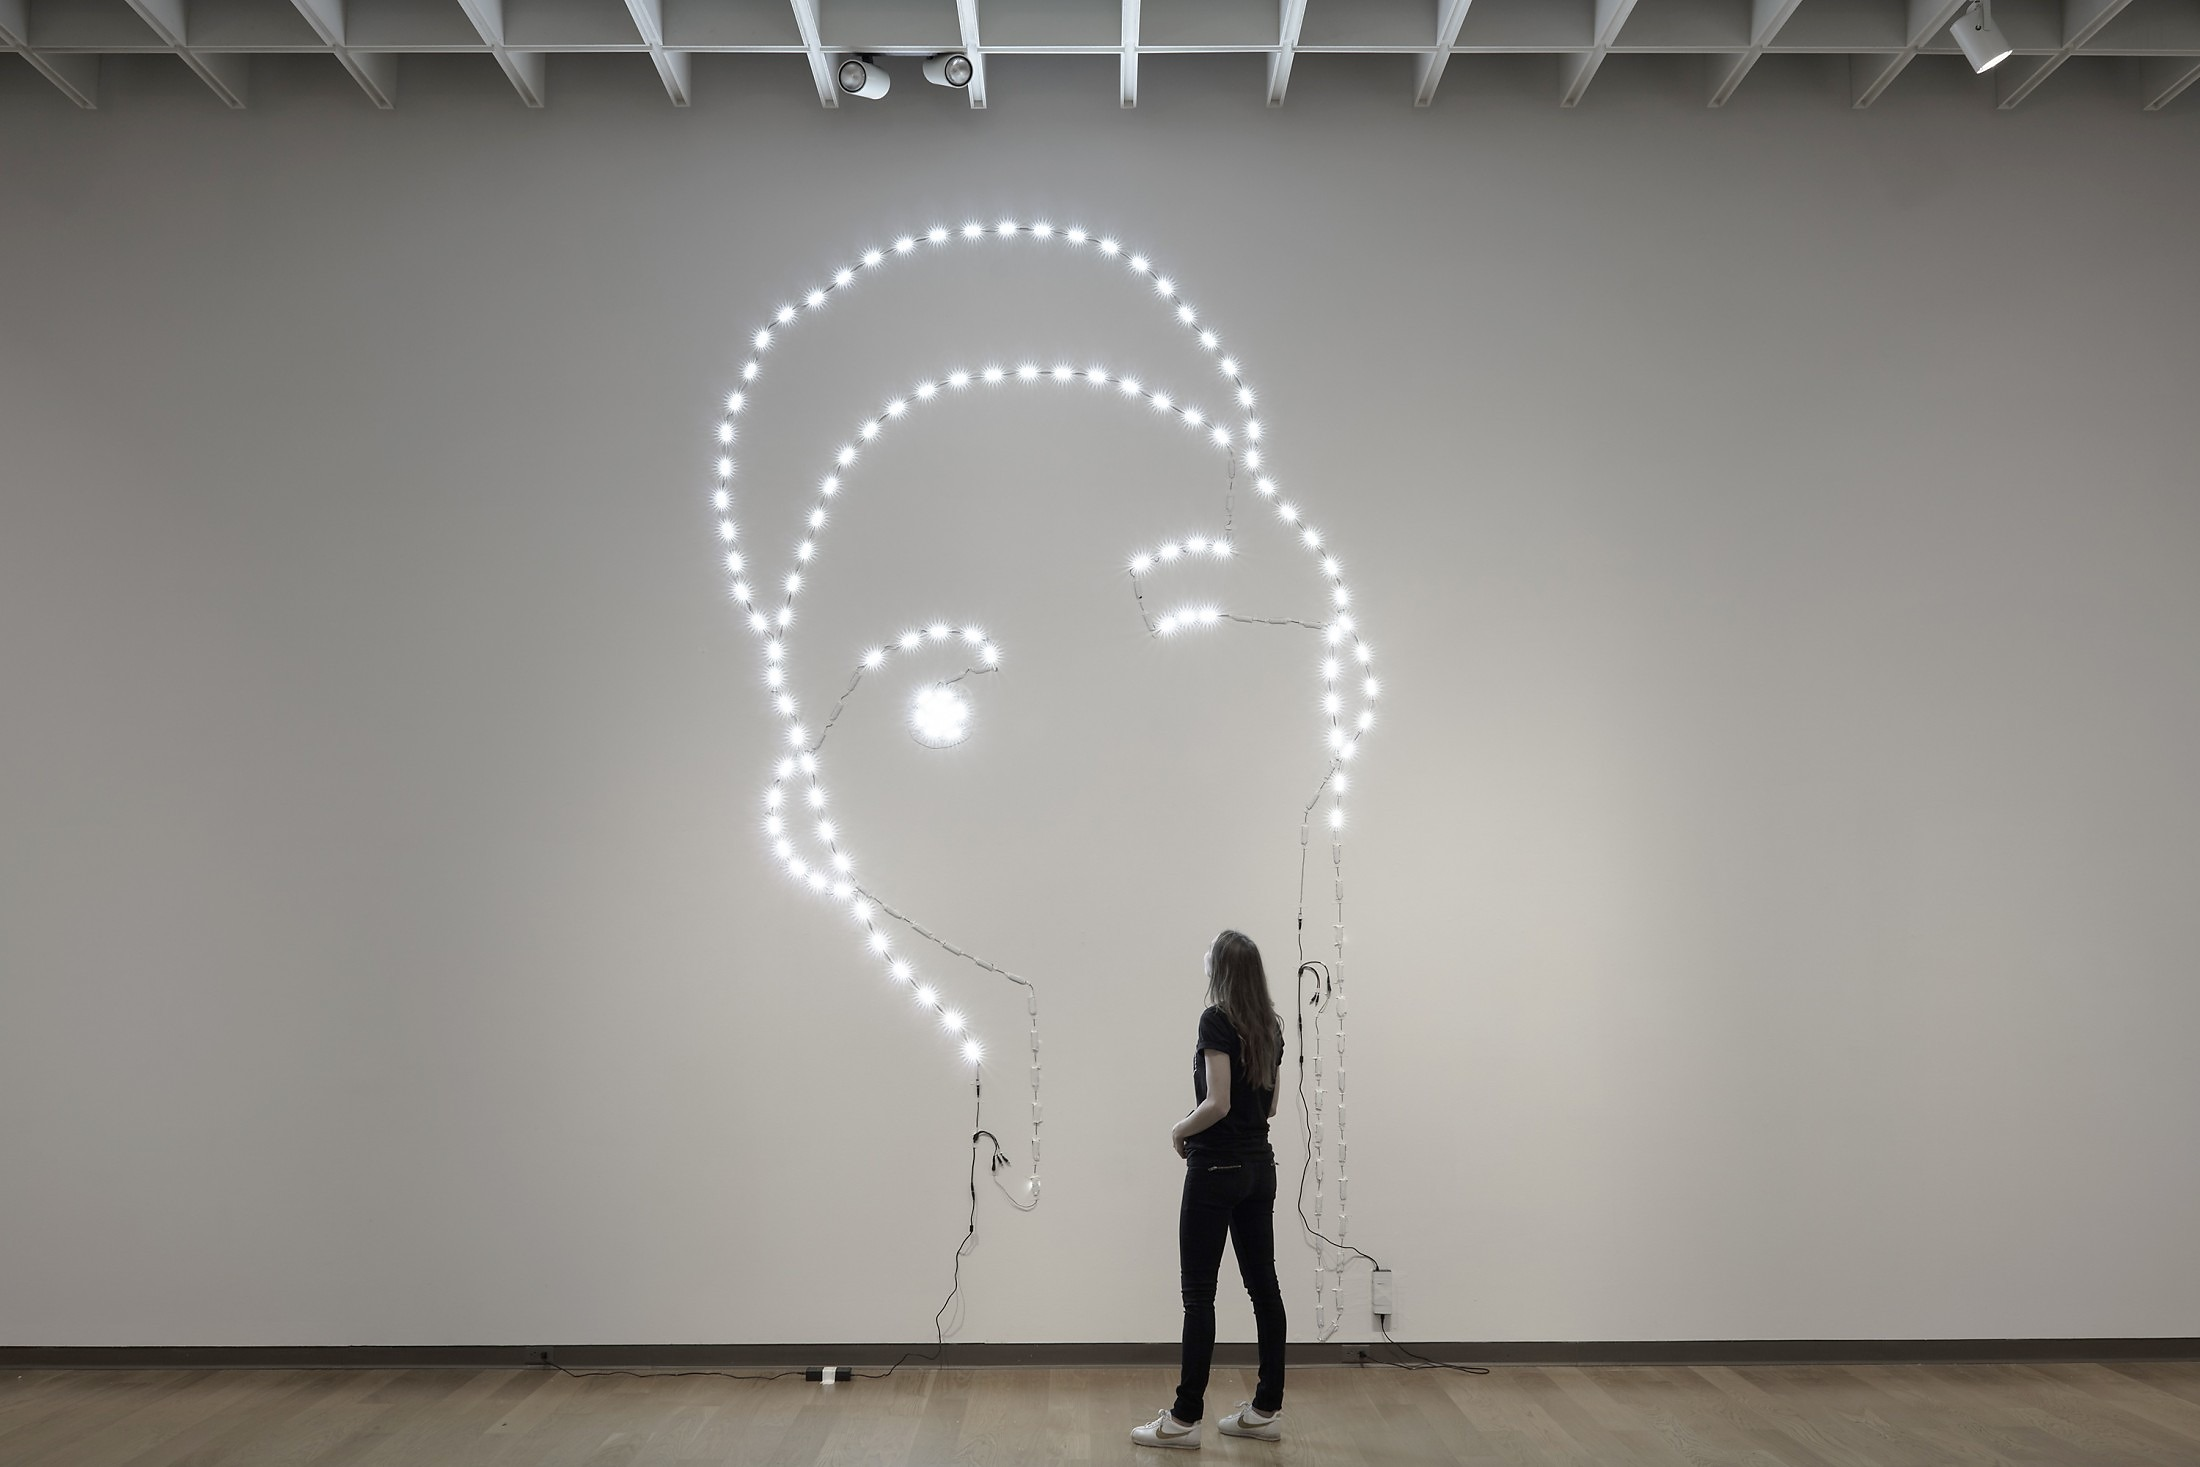 The Young Artist (1840/2018) S5630 Waterproof LED lights, solder, electrical cords, electrical transformer, artist tape, white paint, 14'9″ x 8'8″ 2018